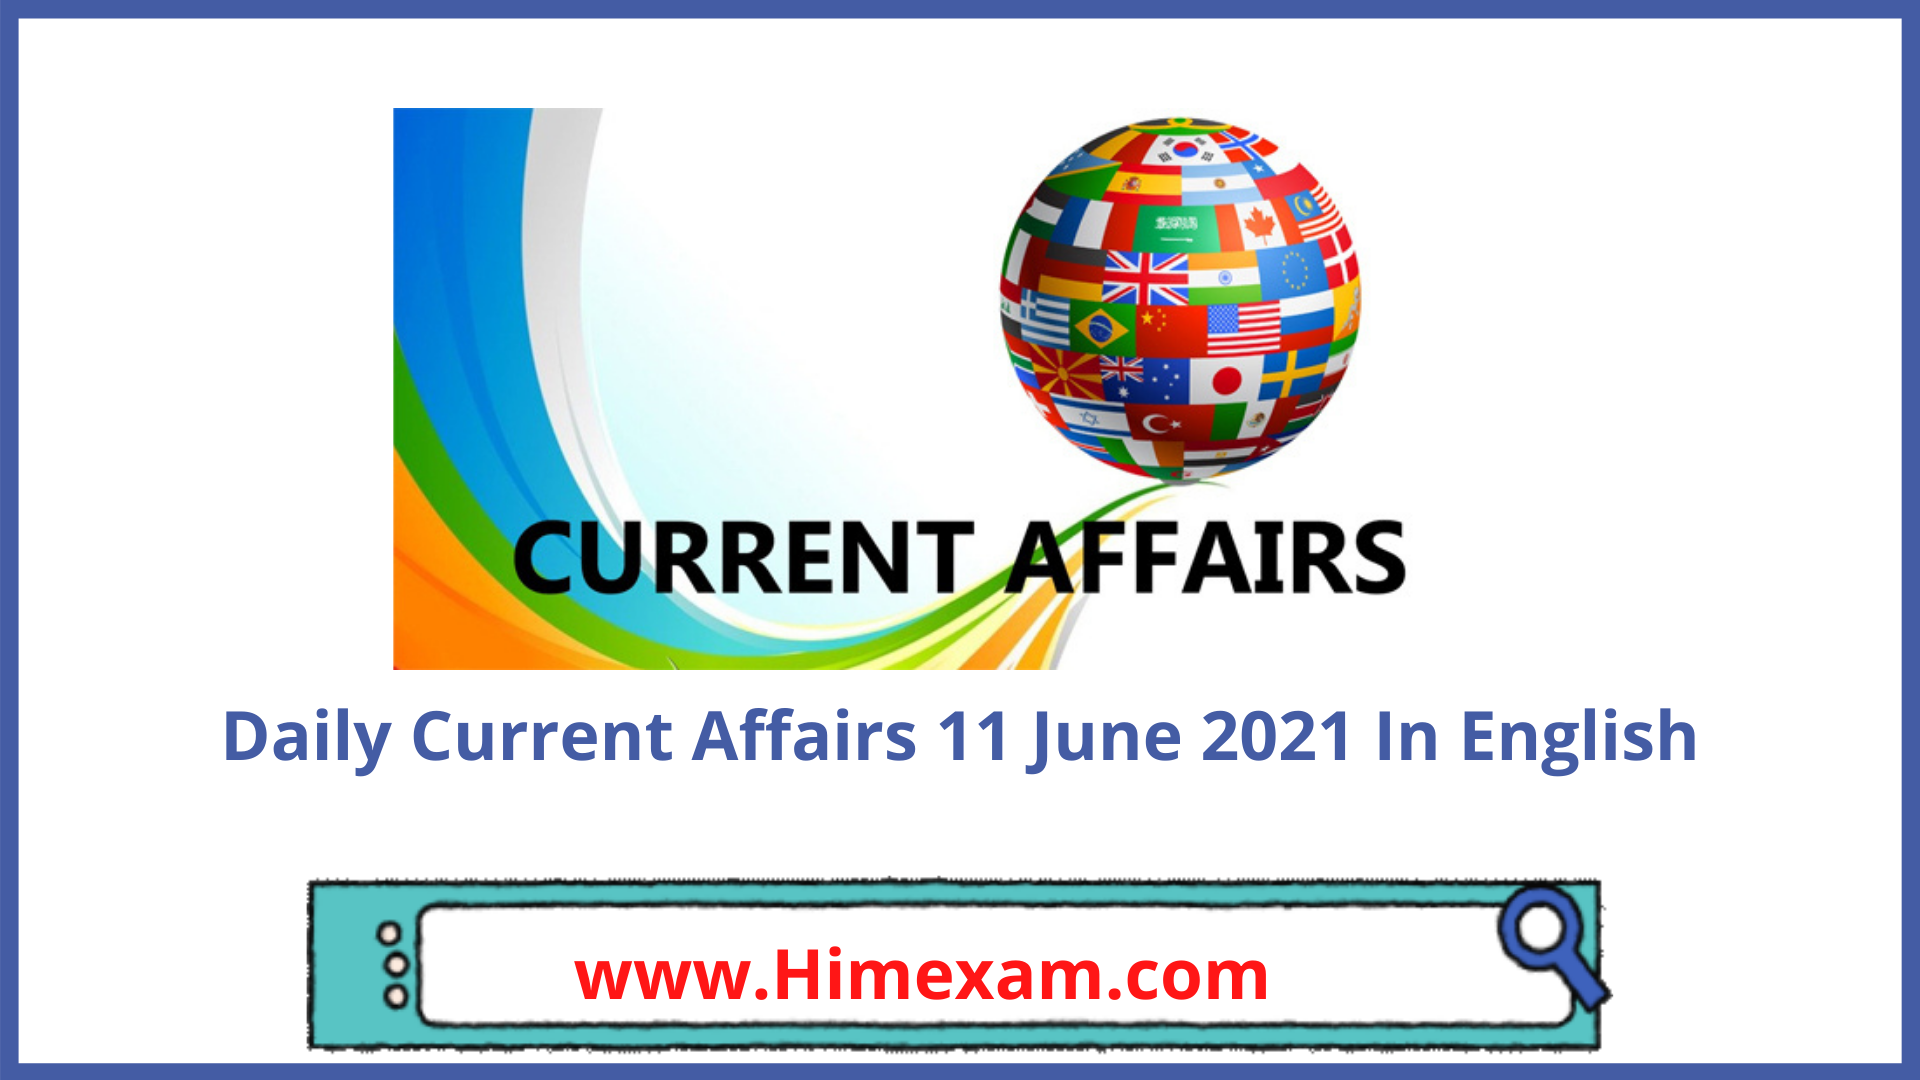 Daily Current Affairs 11 June 2021 In English